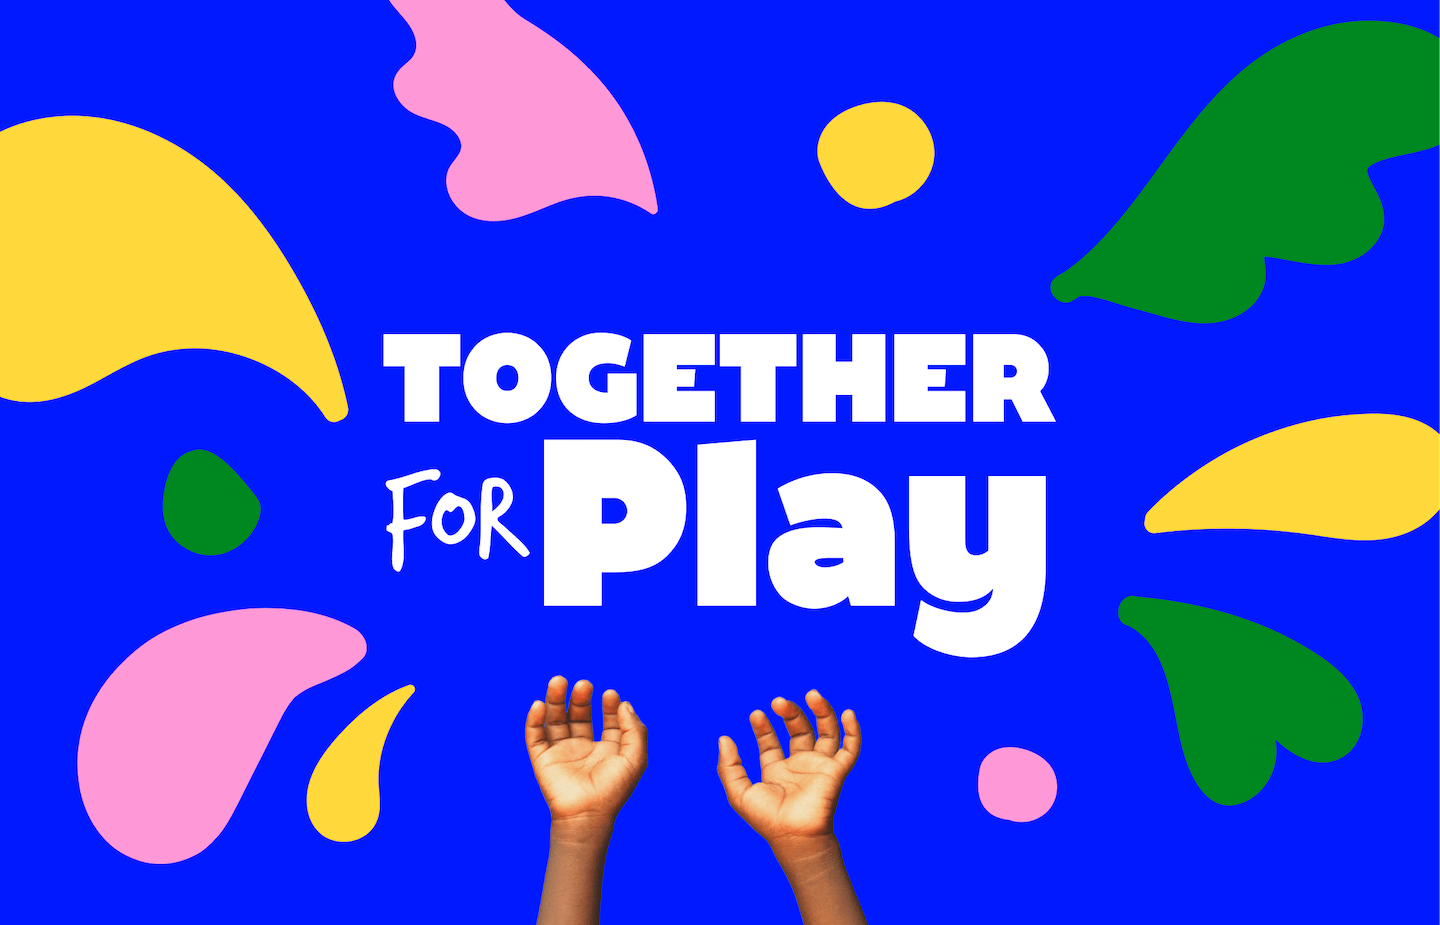 """Logo that says """"together for play"""" with a child hands and colorful background"""